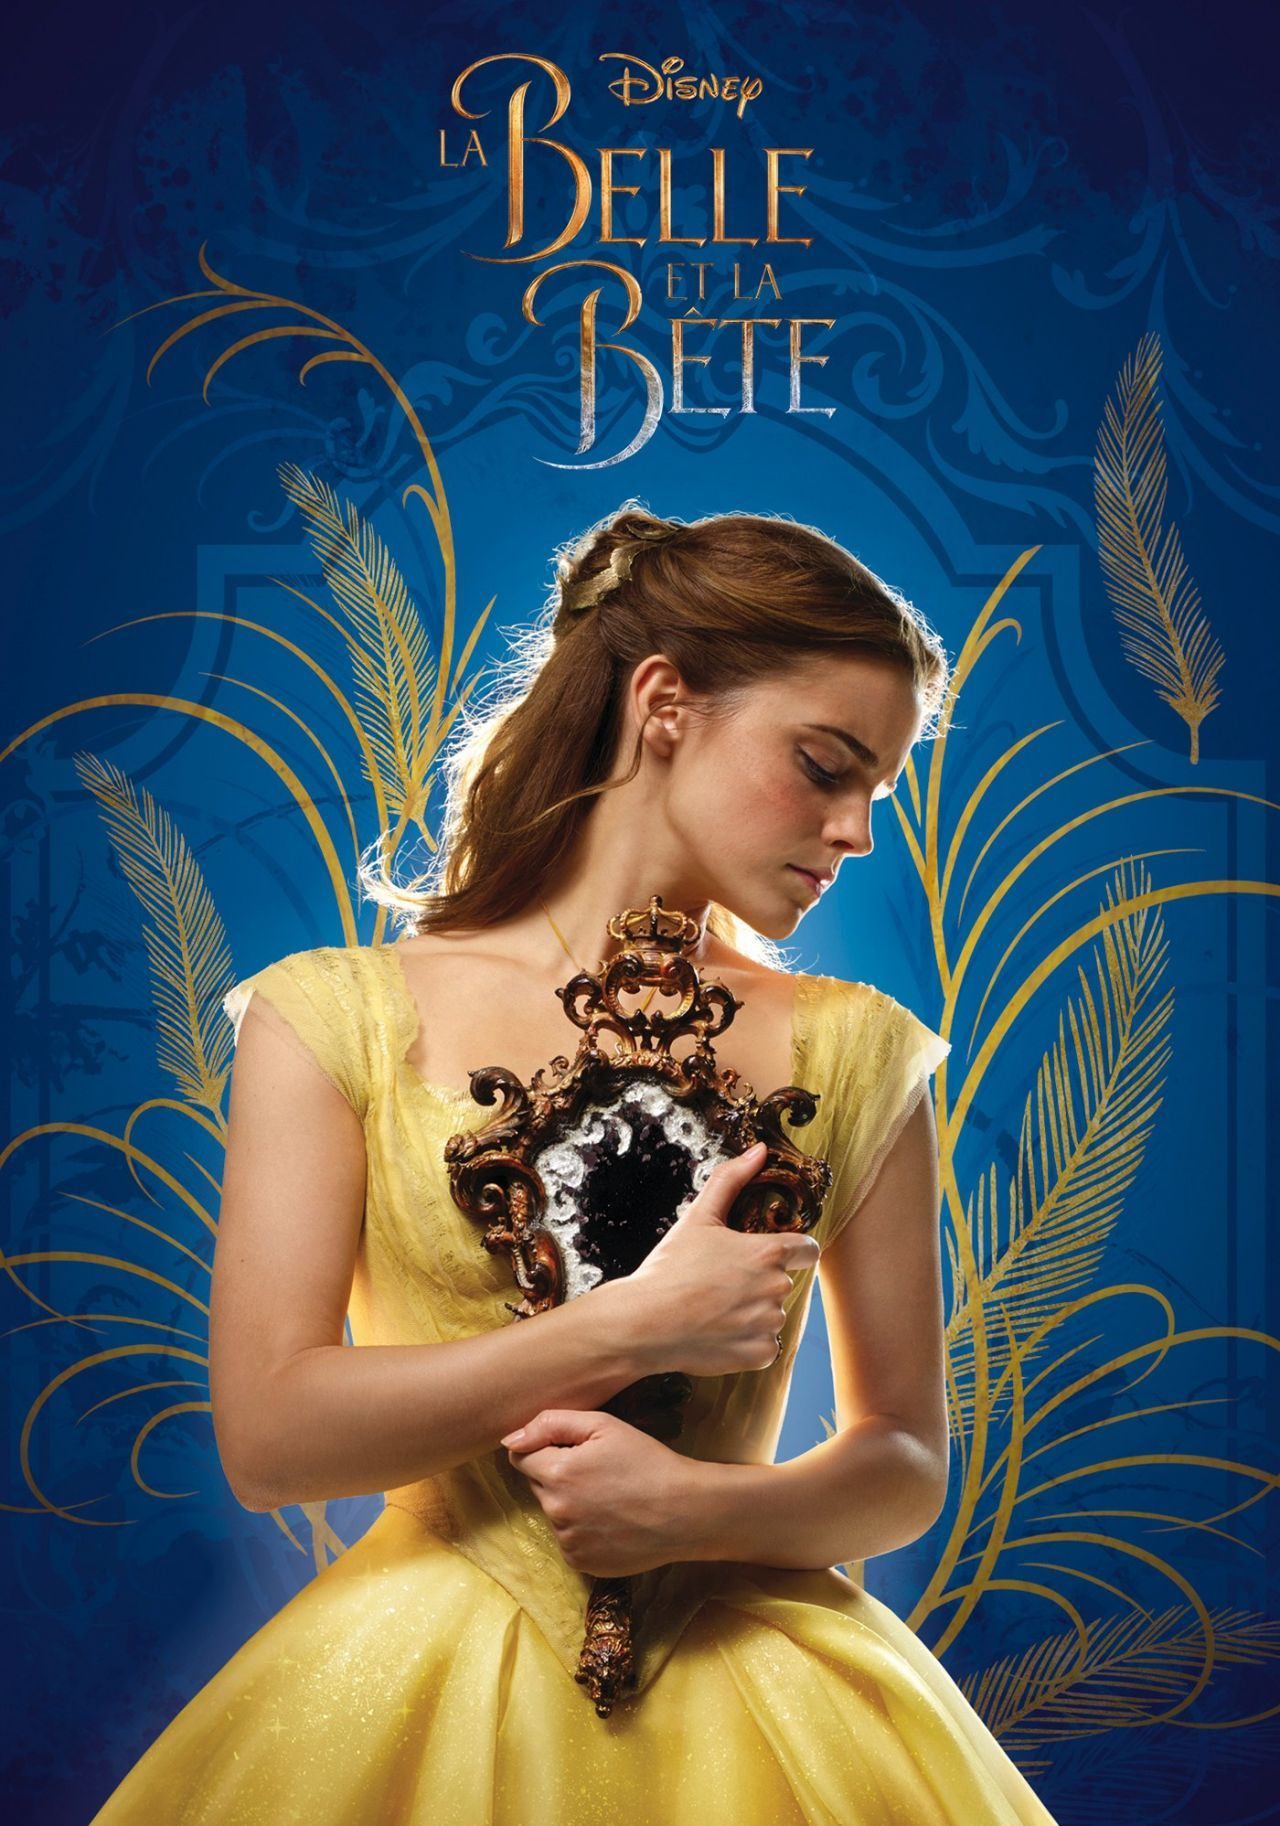 Beauty And The Beast Emma Watson Film Poster